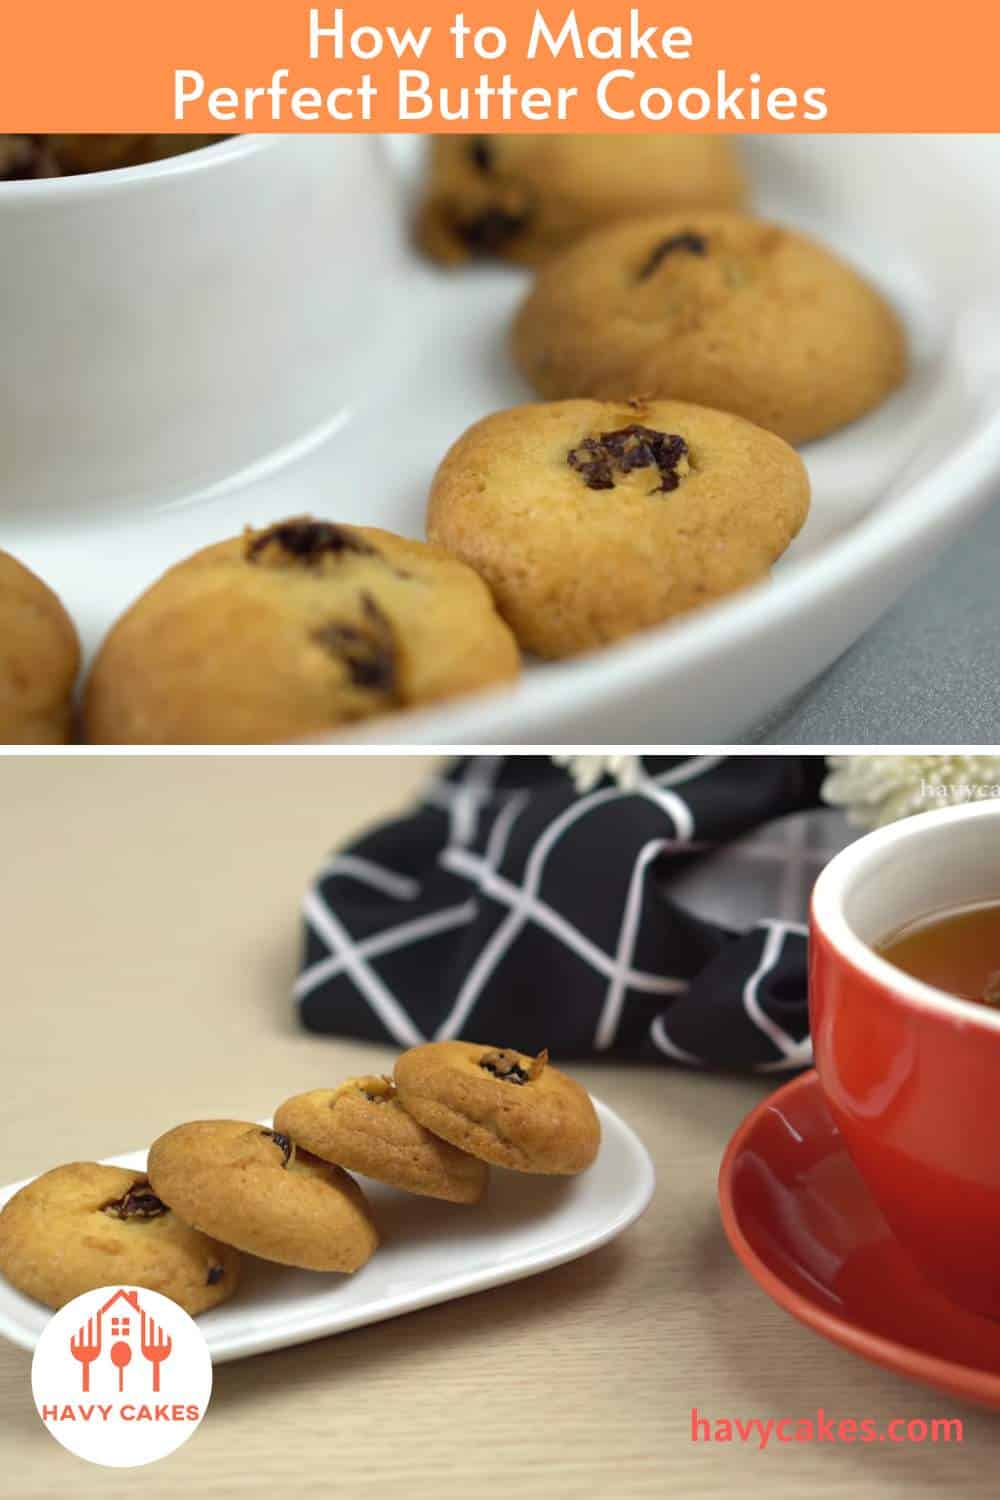 How to make Butter Cookies: End